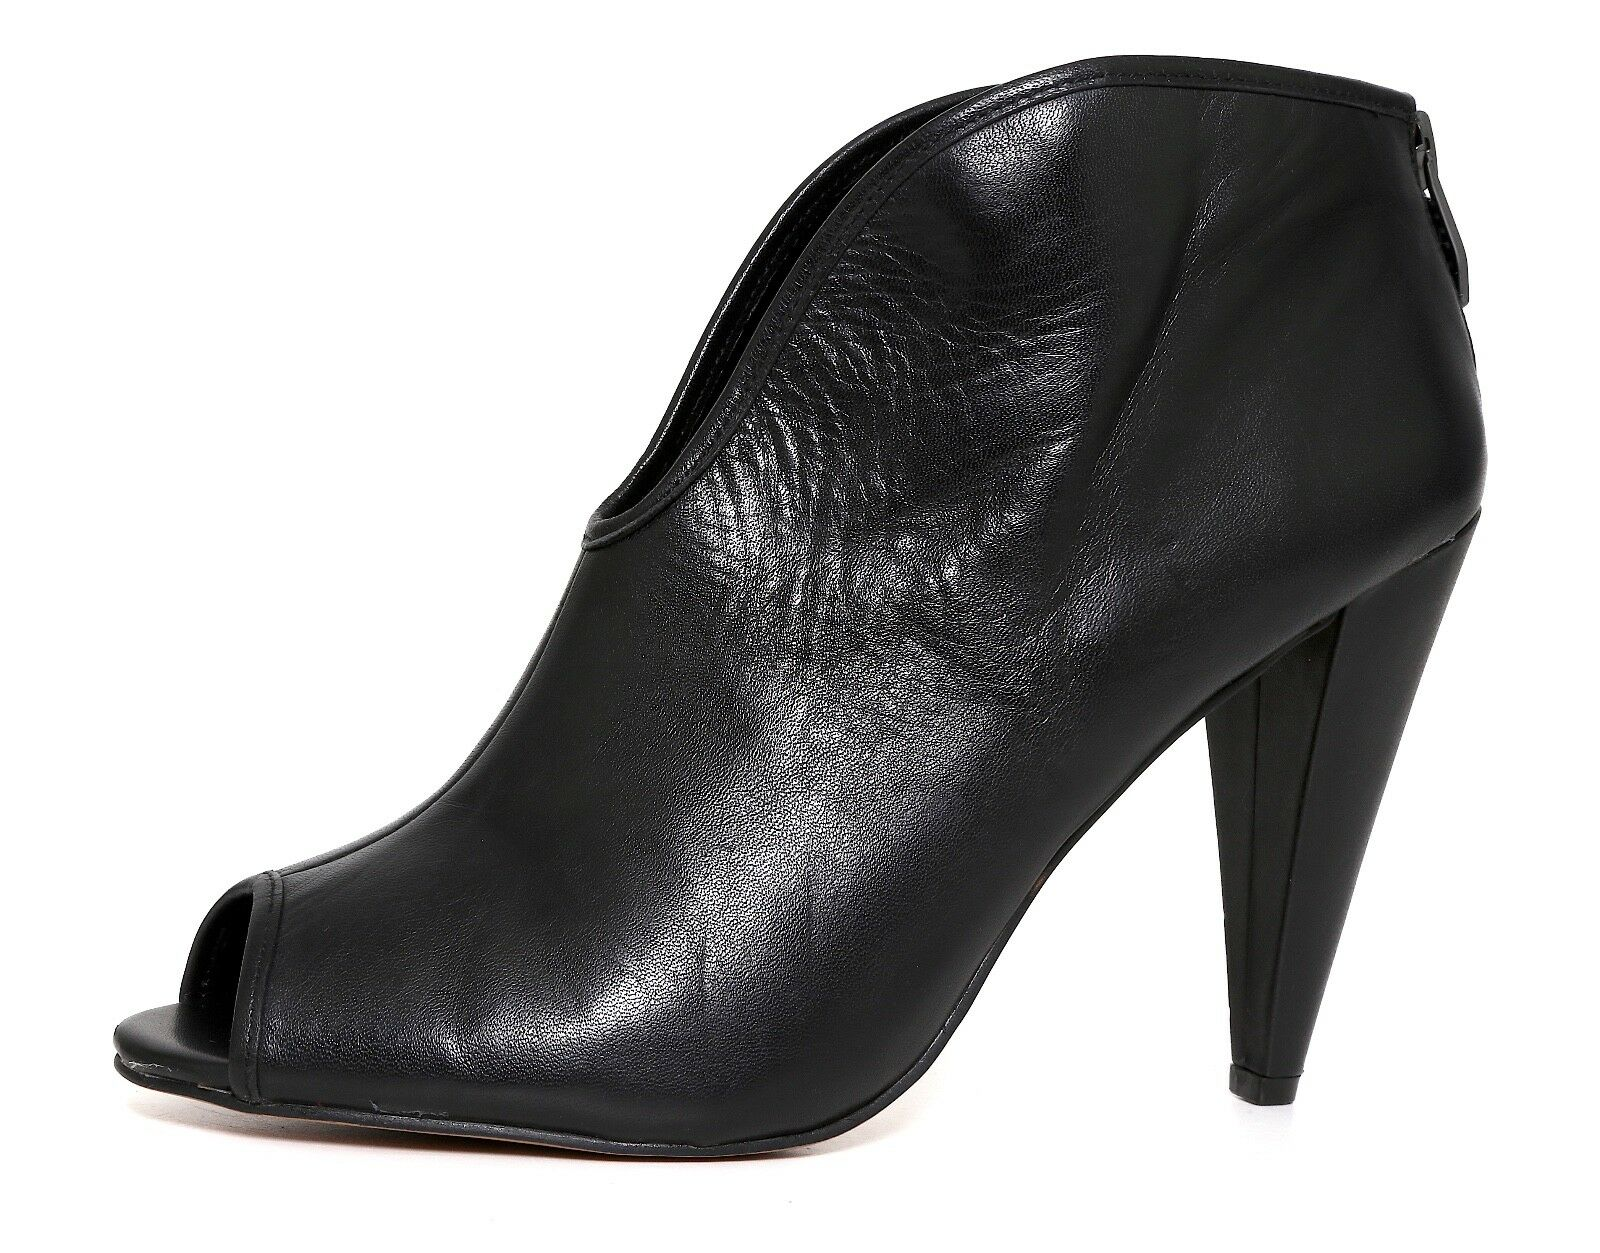 Vince Camuto Ambers Leather 8 Bootie Black Women Sz 8 Leather M 5237 * b95156